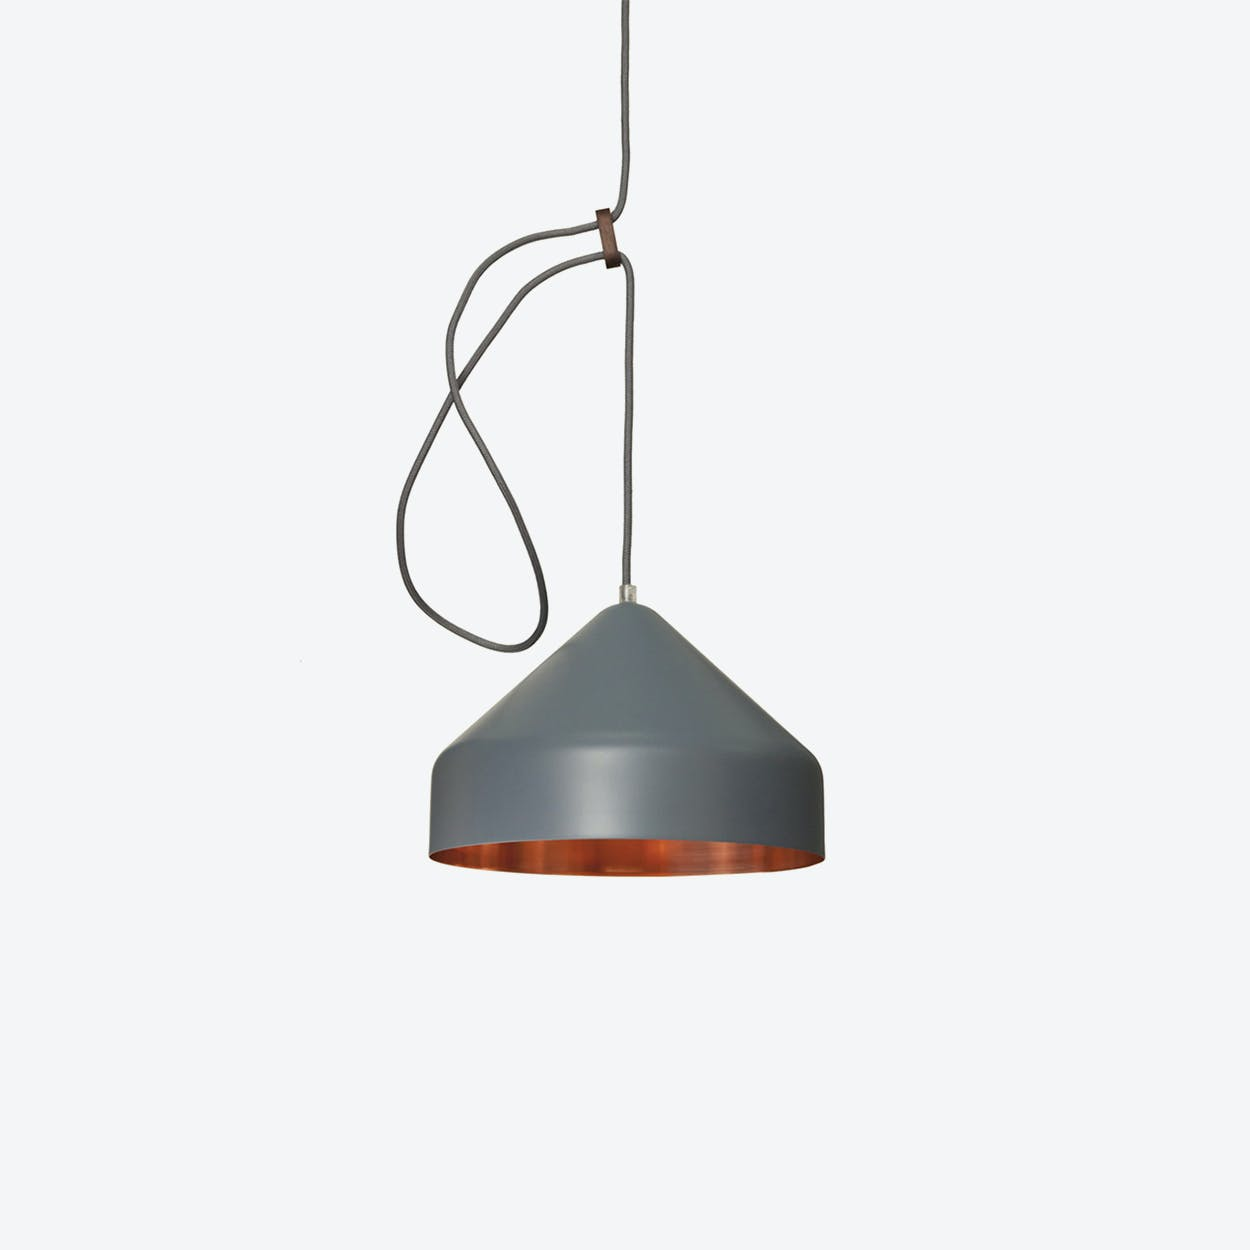 Lloop Pendant Lamp in Copper & Grey